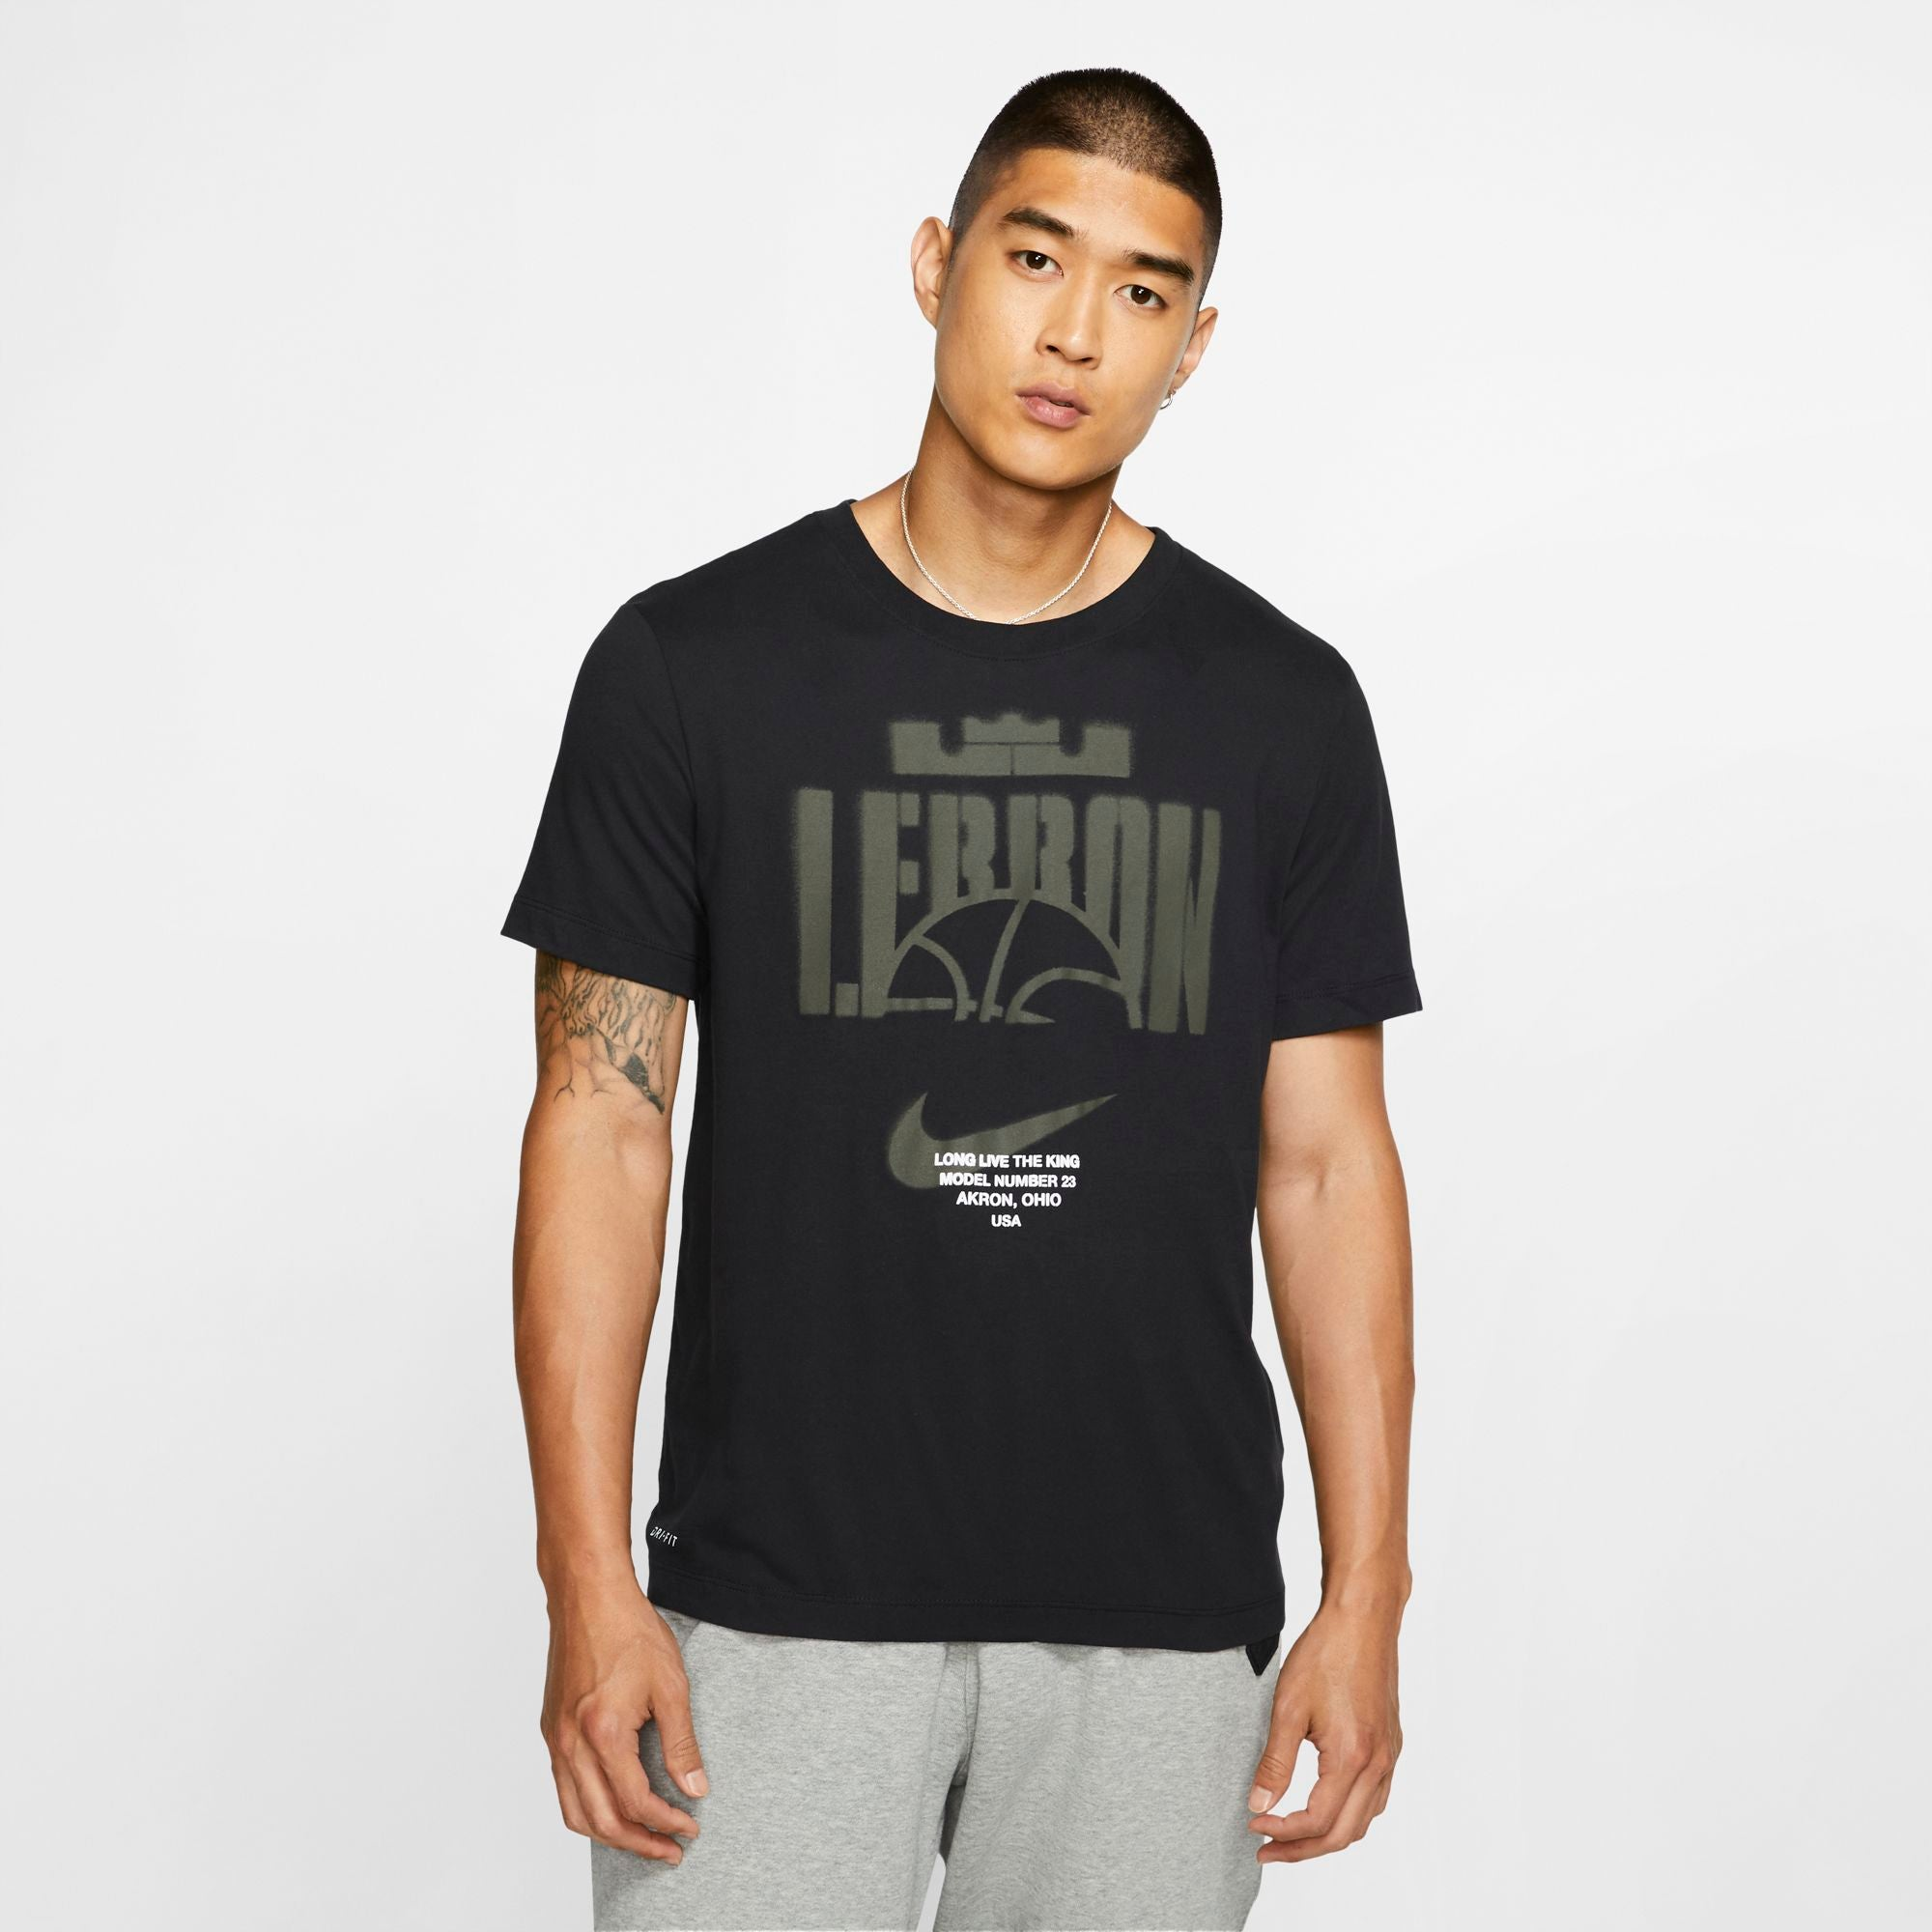 Nike Lebron Dri-fit Long-Live The King Basketball Tee - Black